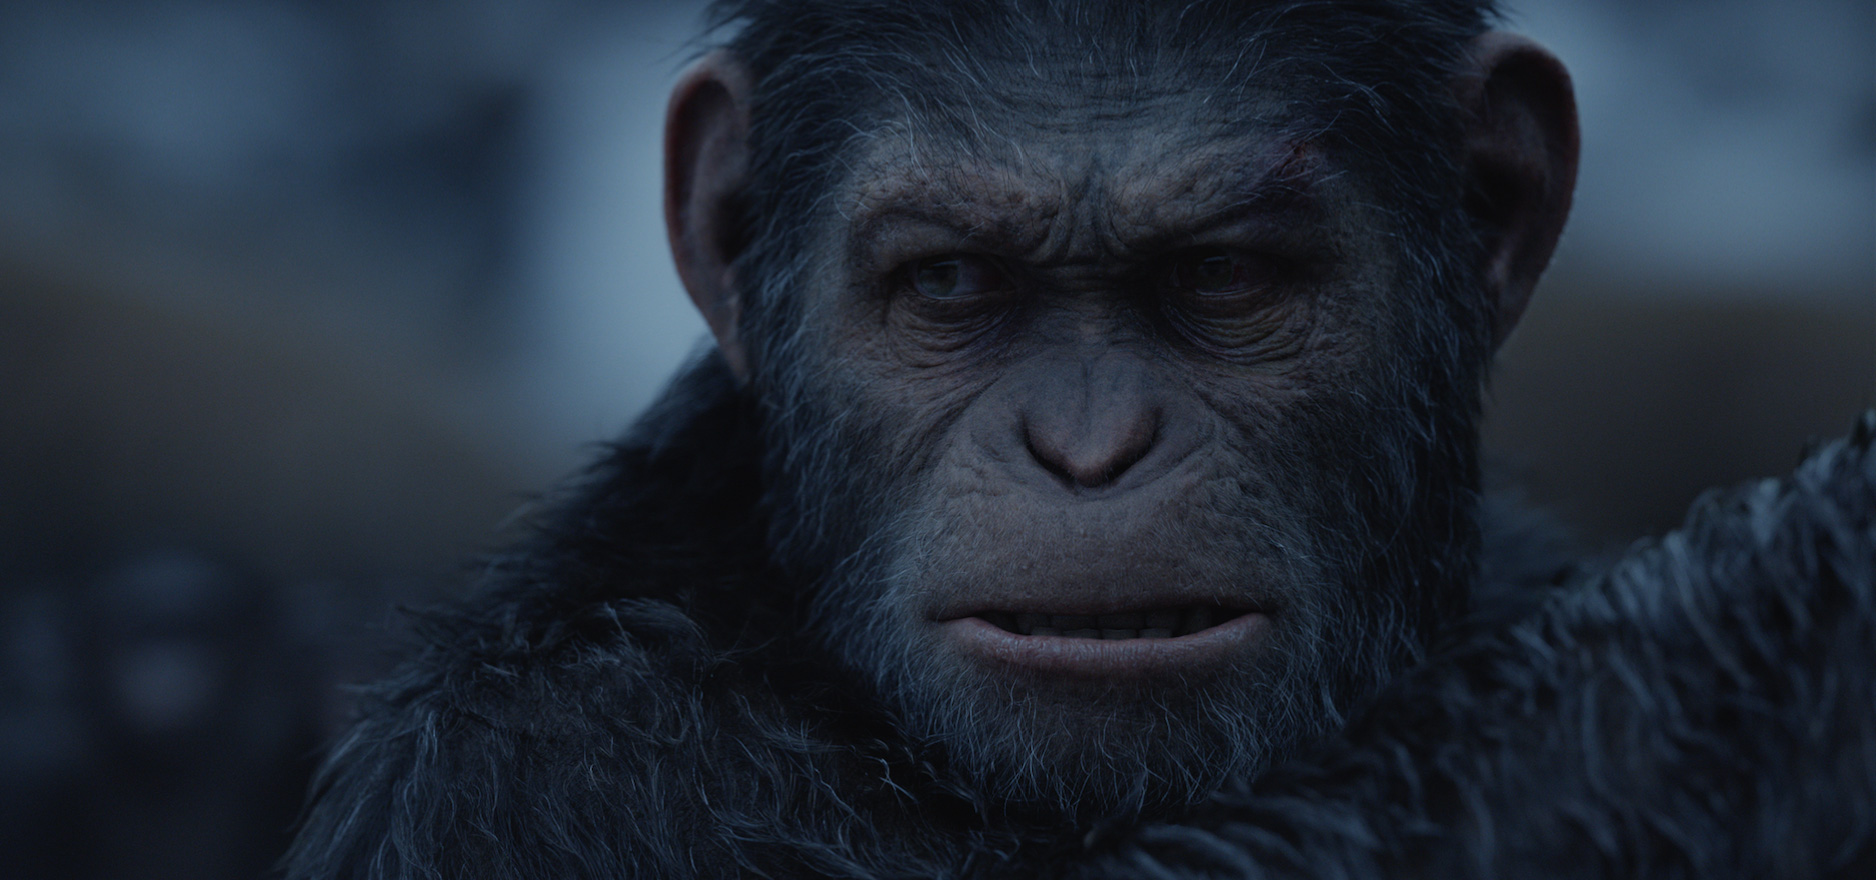 War for the Planet of the Apes S2017 article